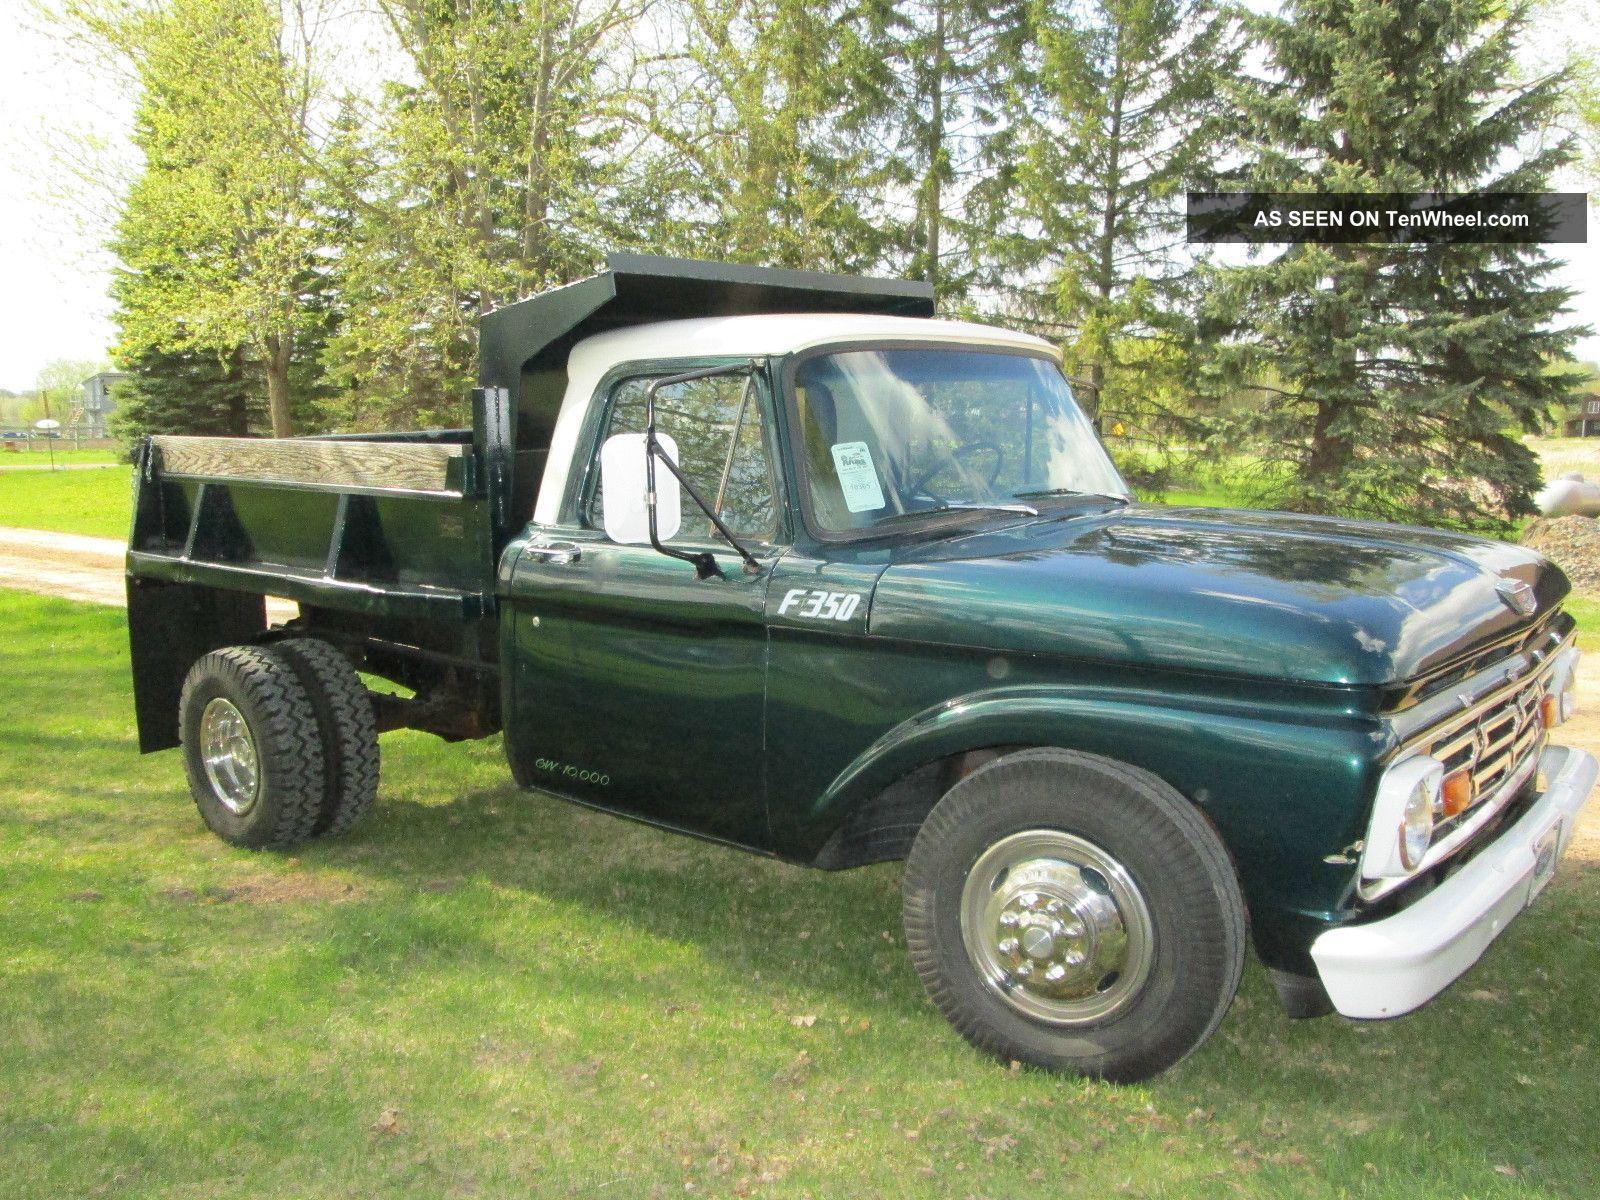 1965 Ford F - 350 Dump Truck,  Green,  Rare,  Collector,  Classic,  Dually, F-350 photo